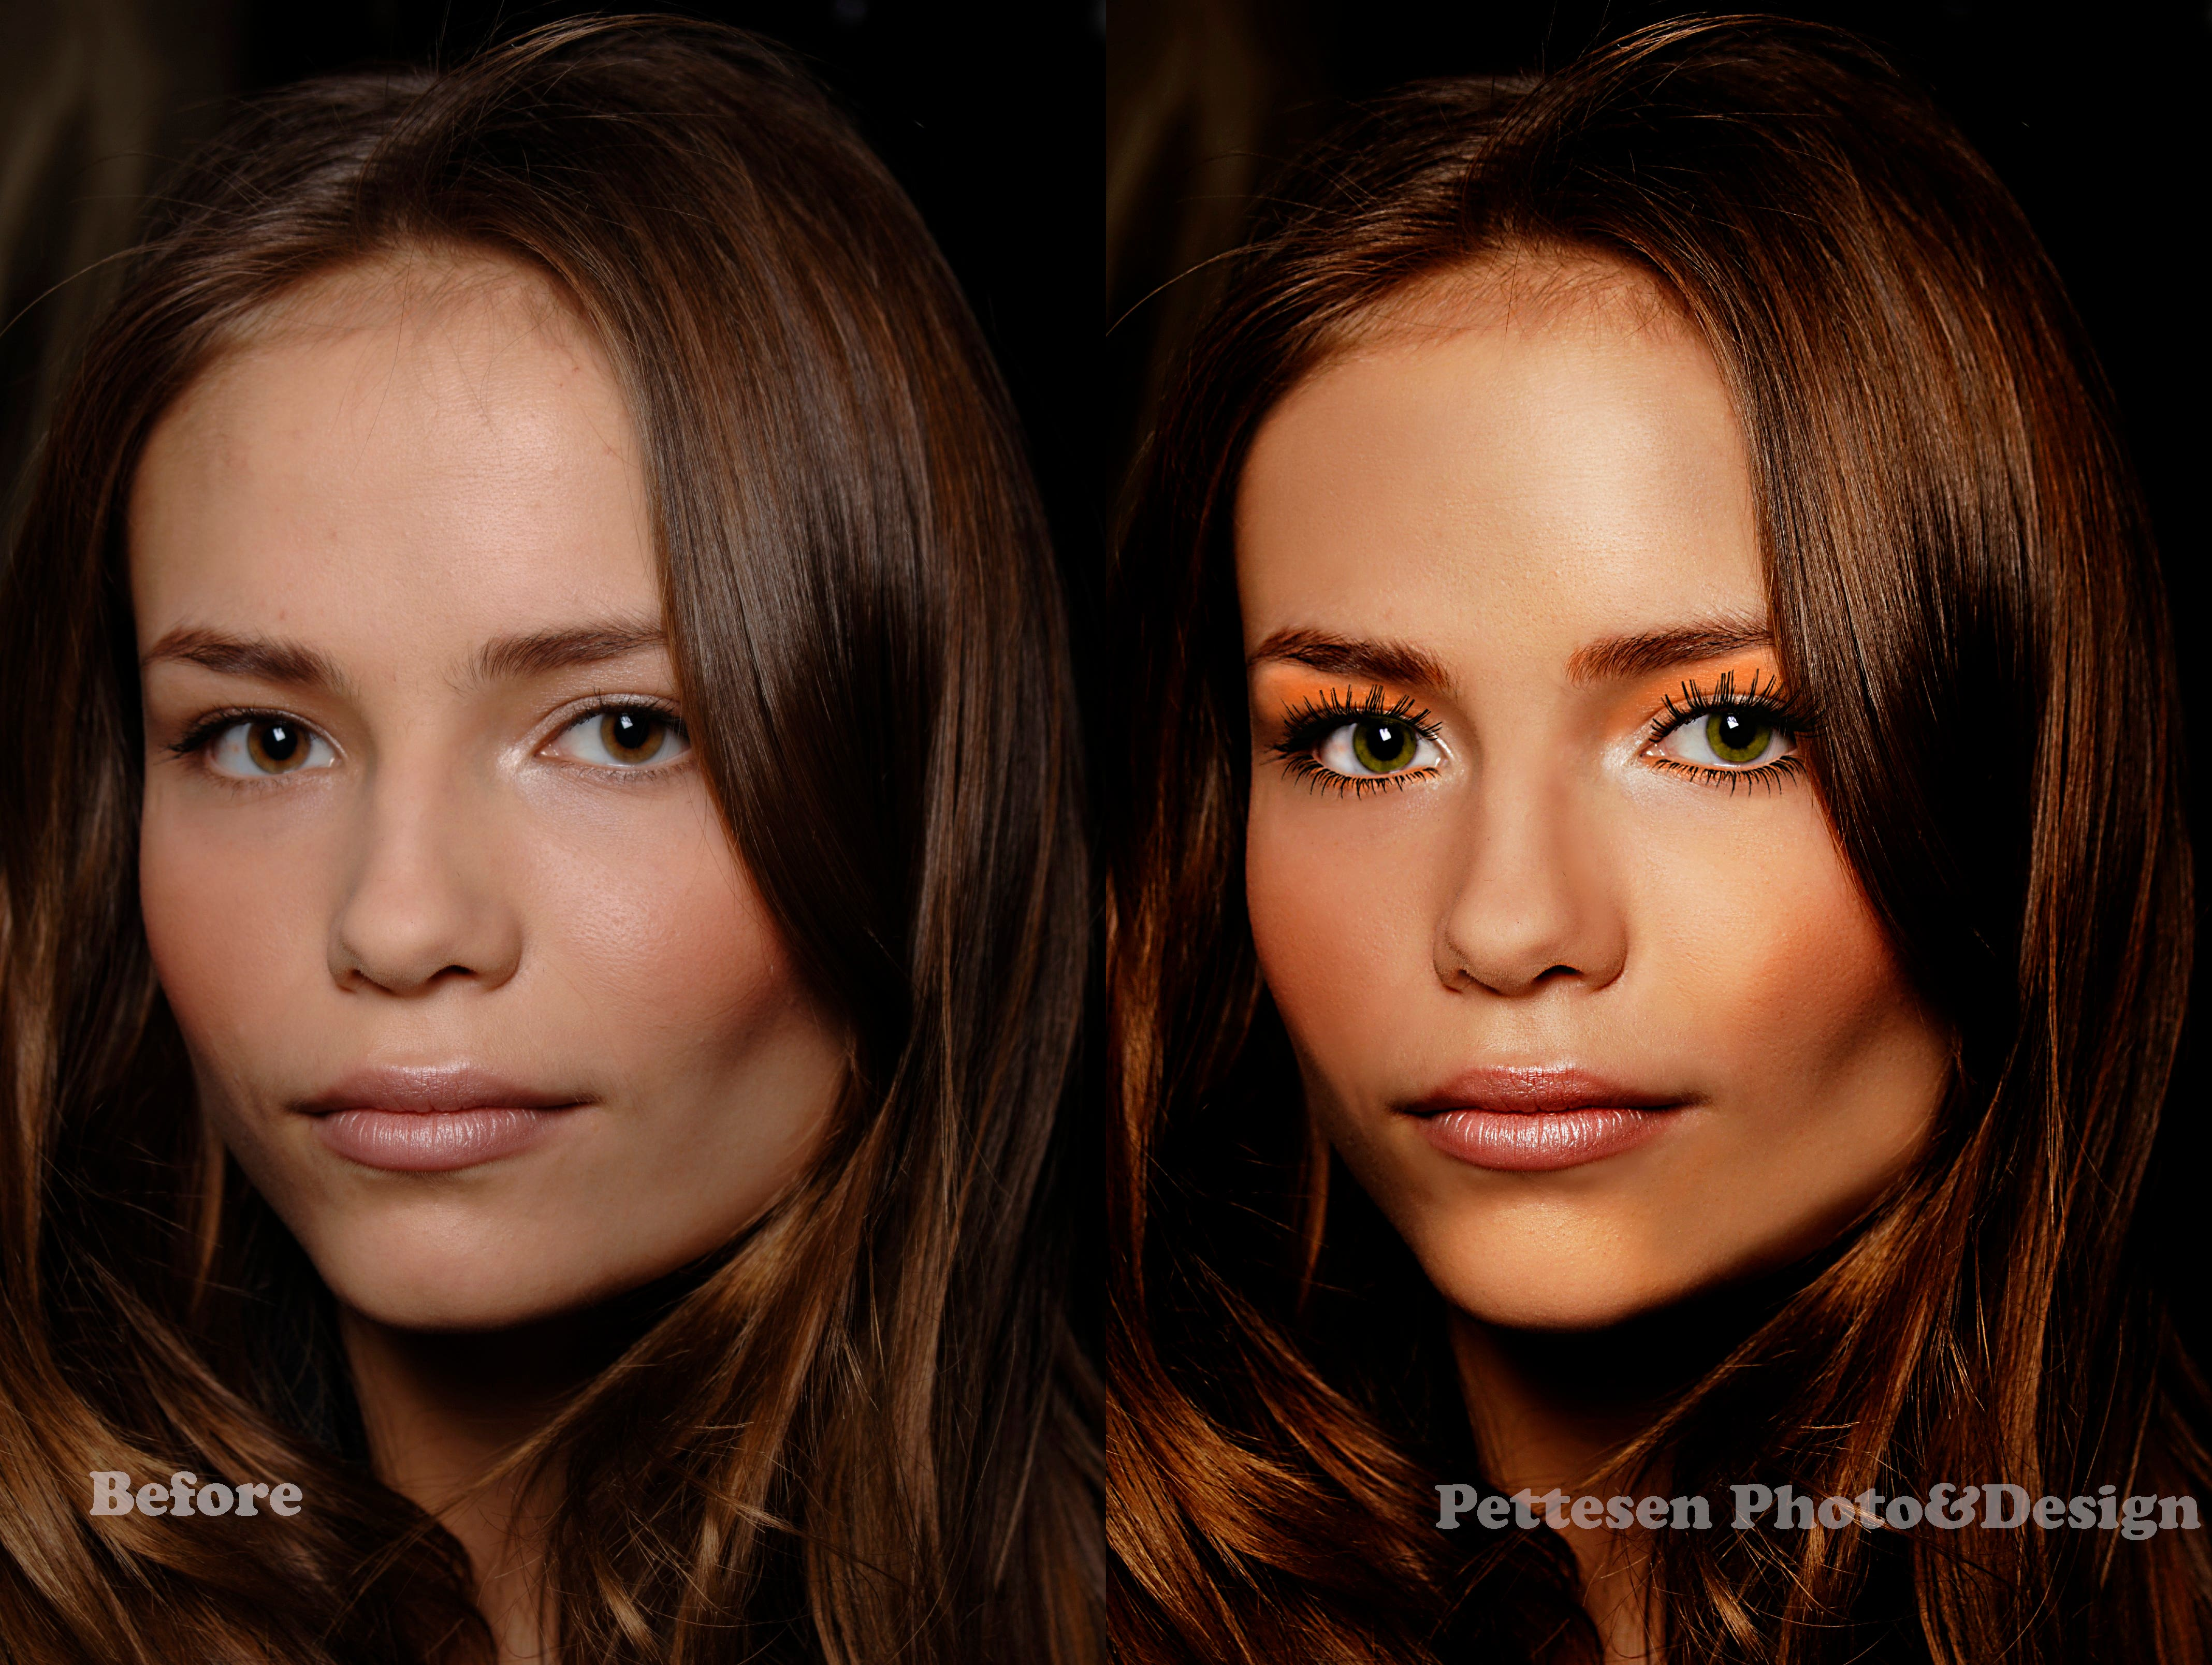 Beauty and Fashion Retouching